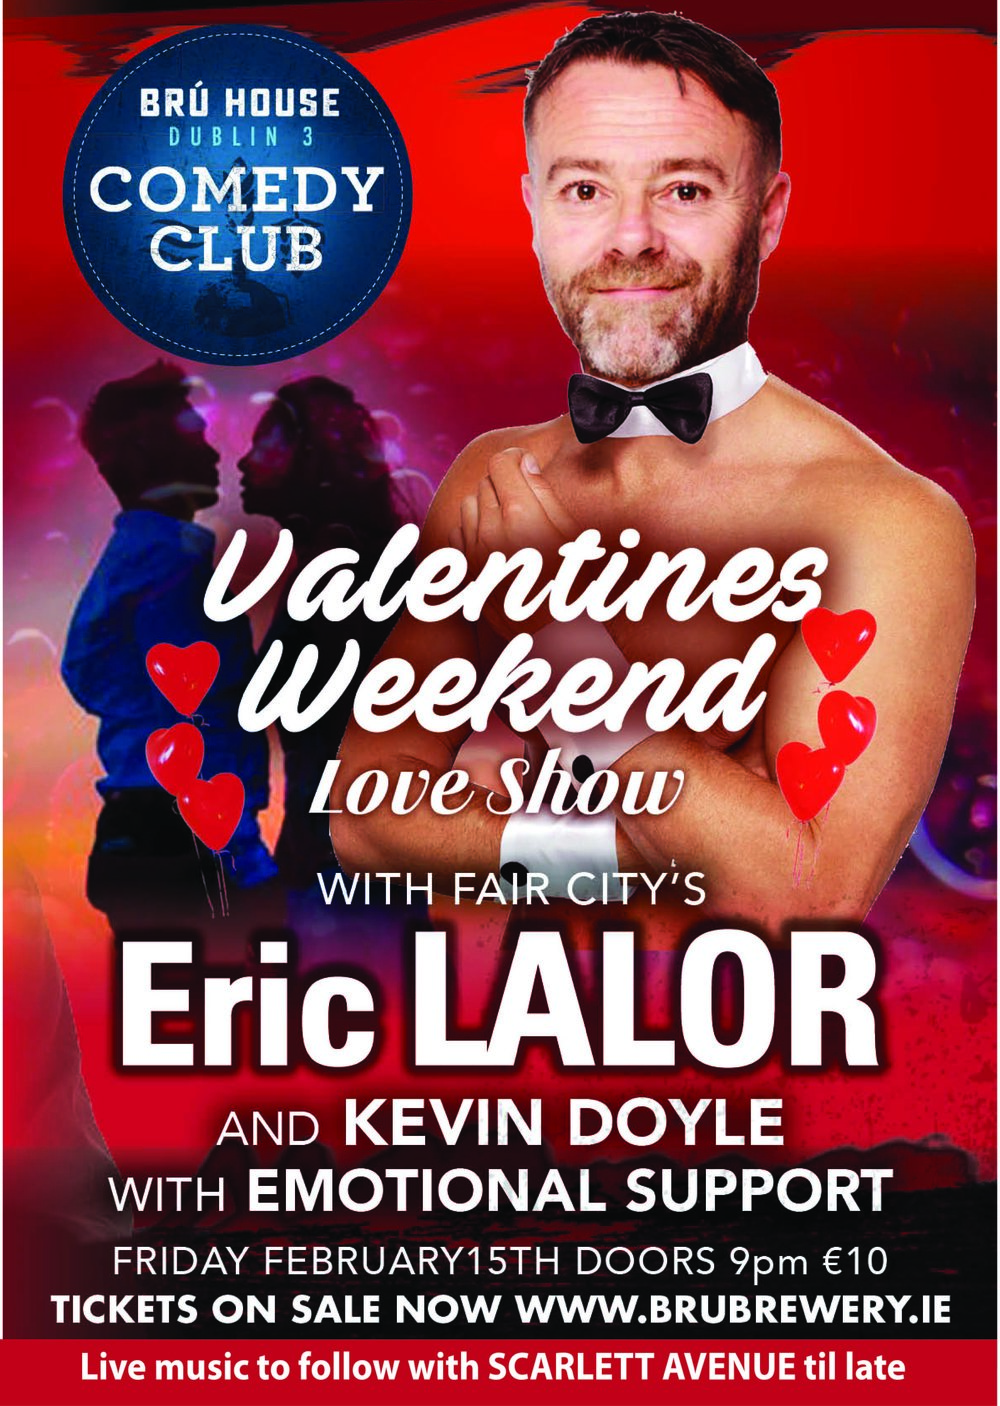 Eric Lalor live at BRÚ House Comedy Club Friday Feb 15th